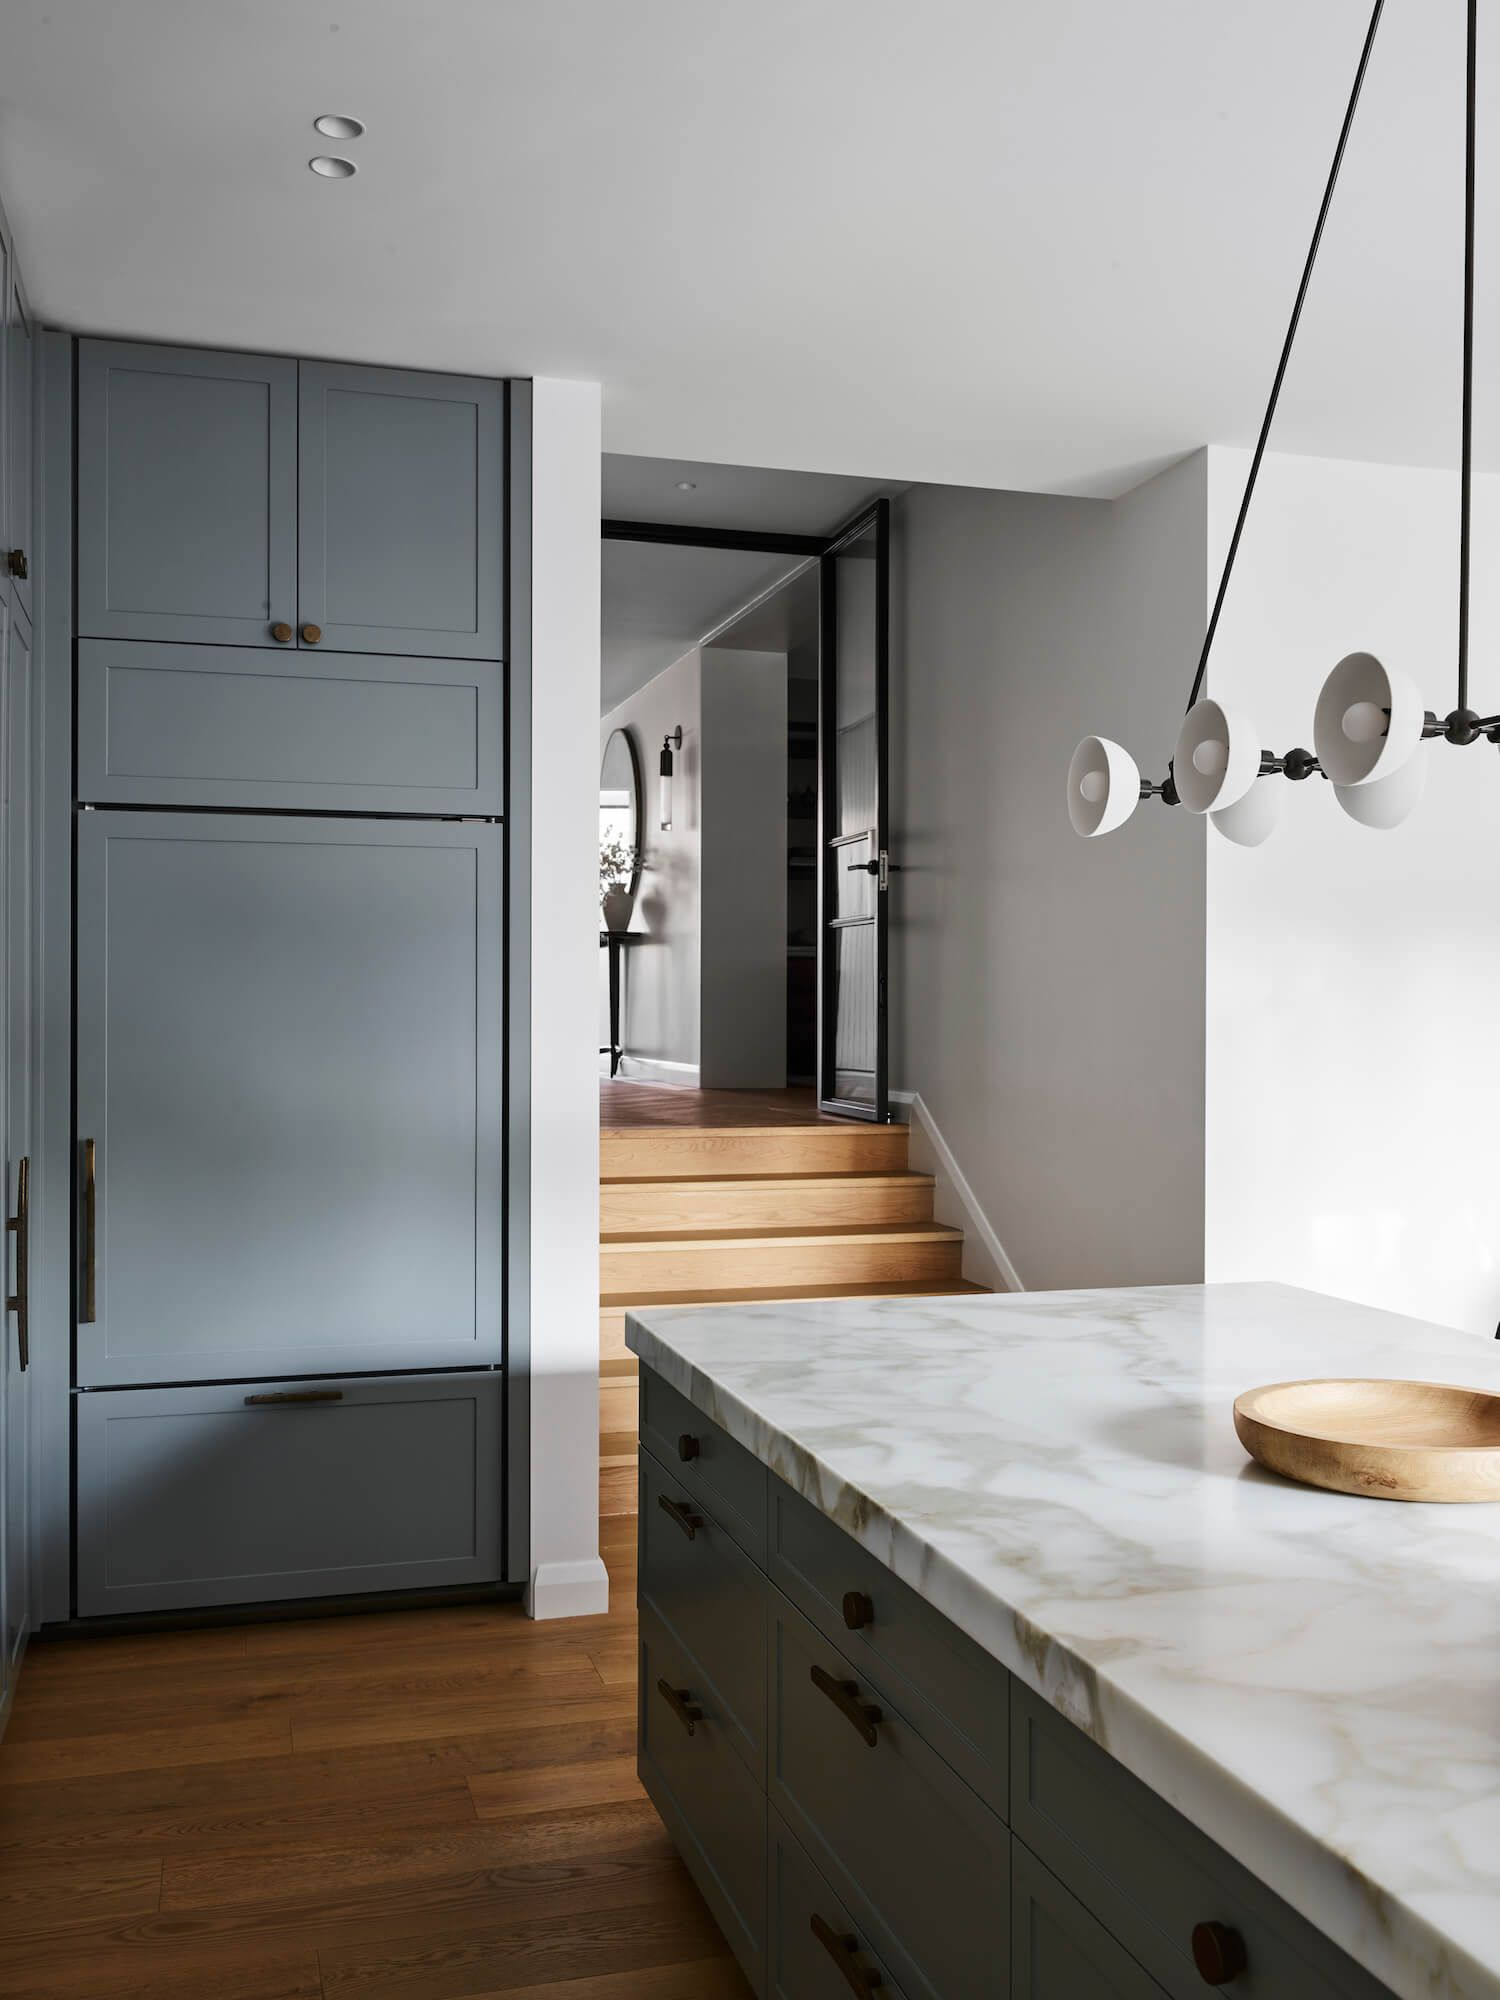 Magnolia House By Arent Pyke With Images Kitchen Design